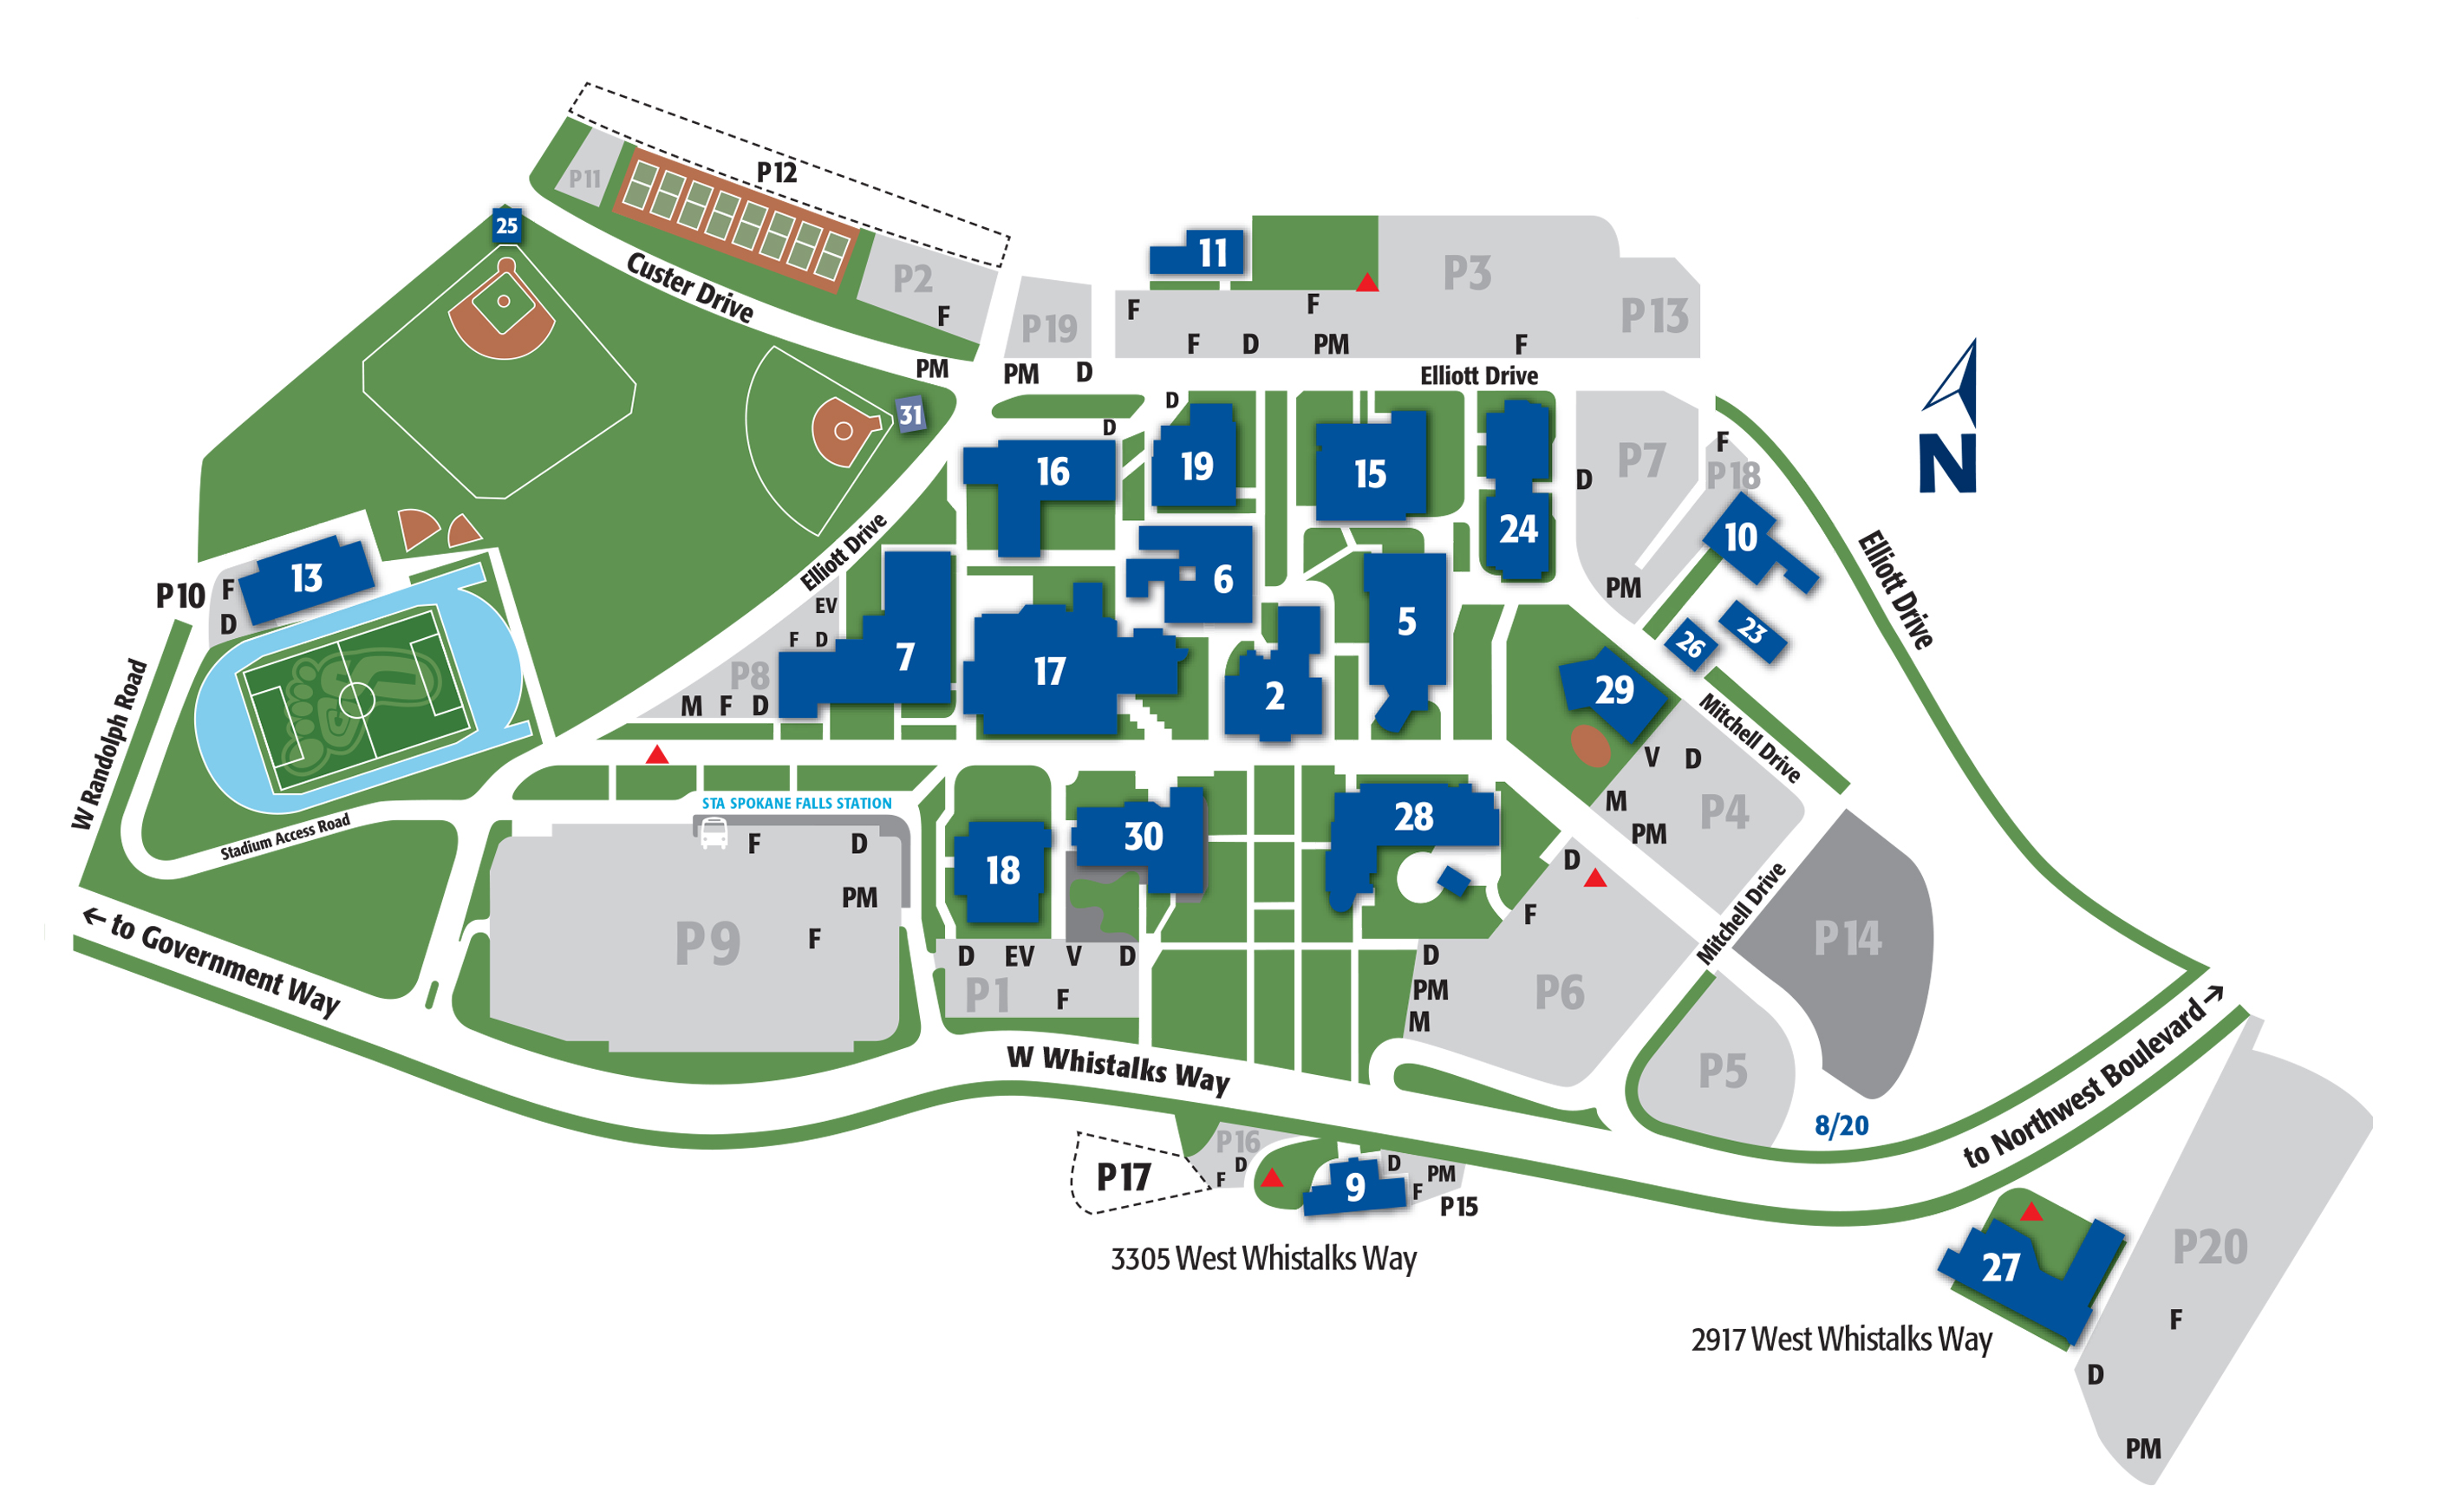 spokane falls community college campus map Maps And Directions